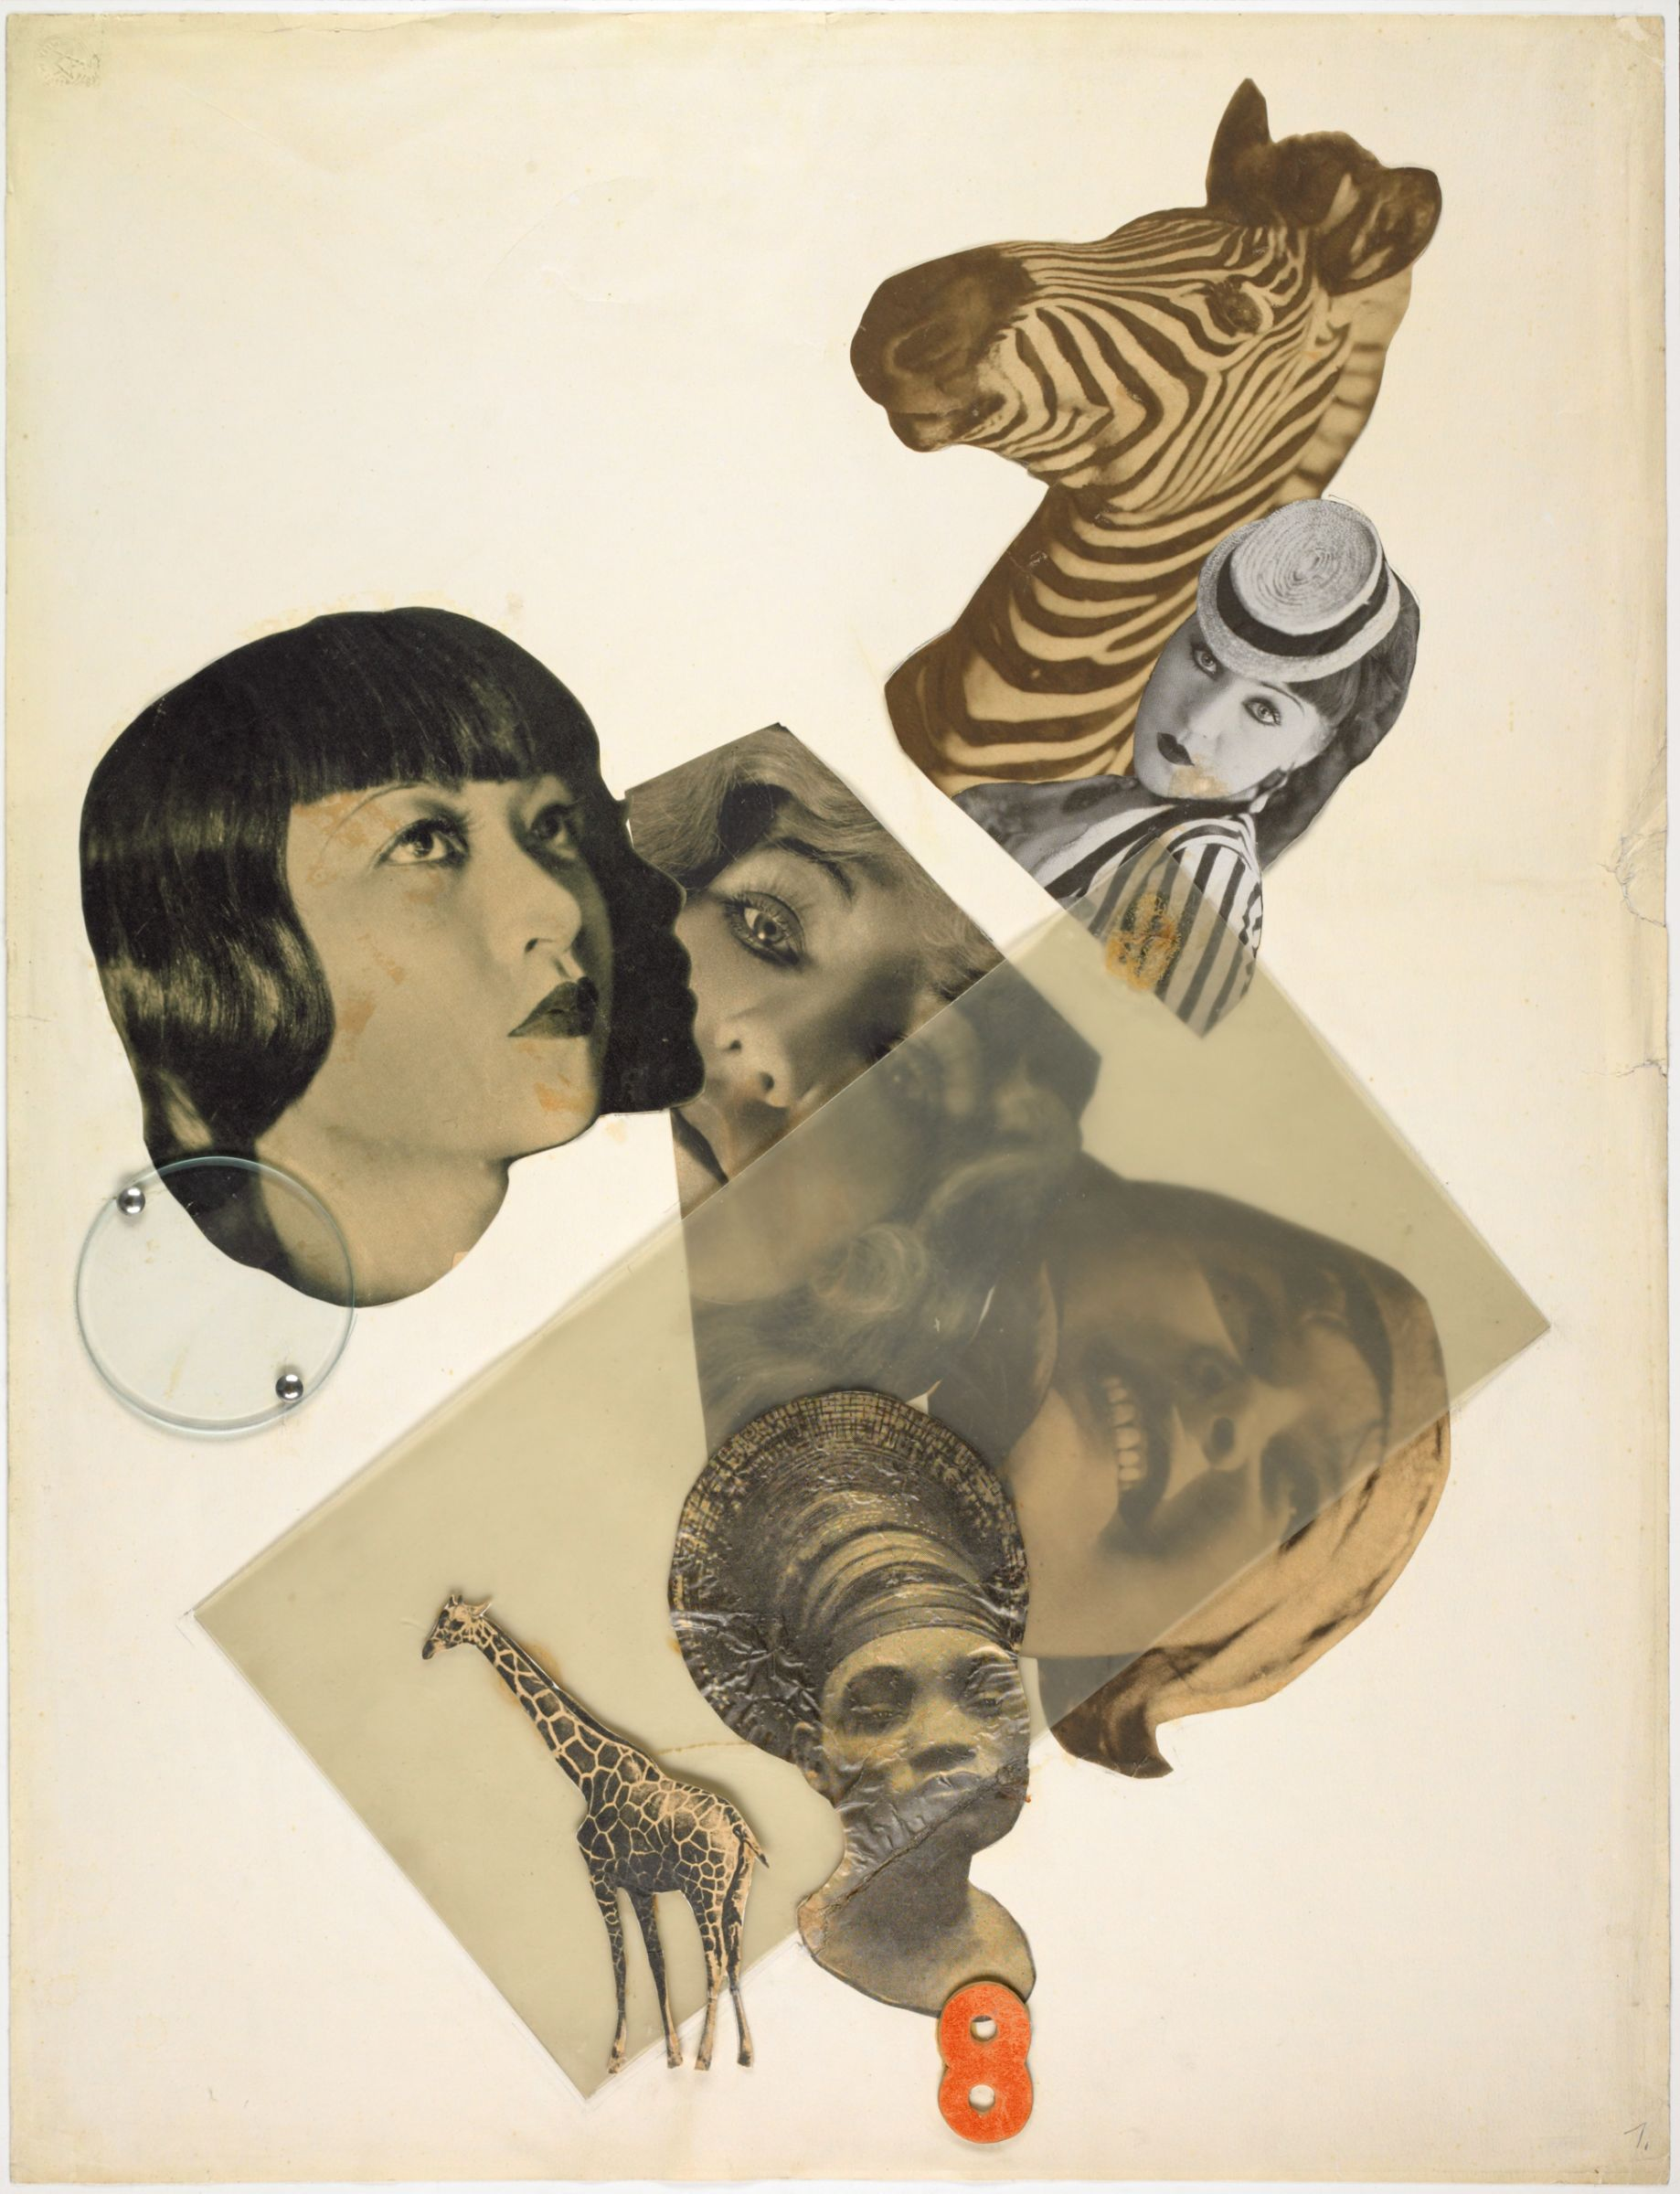 Marianne Brandt - Untitled [with Anna May Wong] - Harvard Art Museums/Busch-Reisinger Museum © Artists Rights Society (ARS), New York